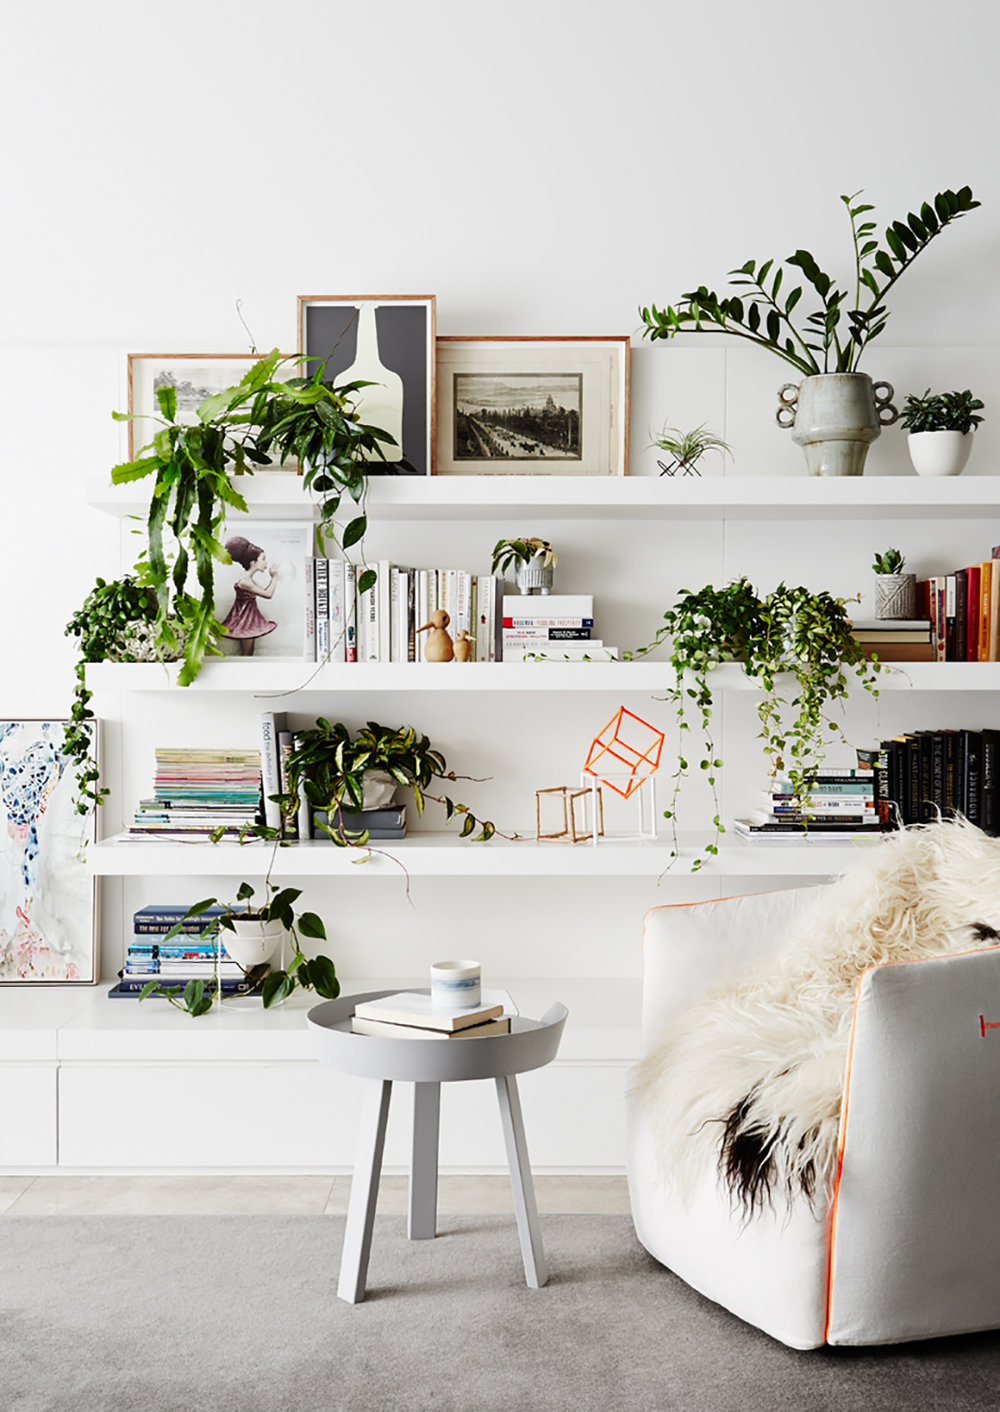 8 Stylish Ways To Decorate + Live With Plants — decor8